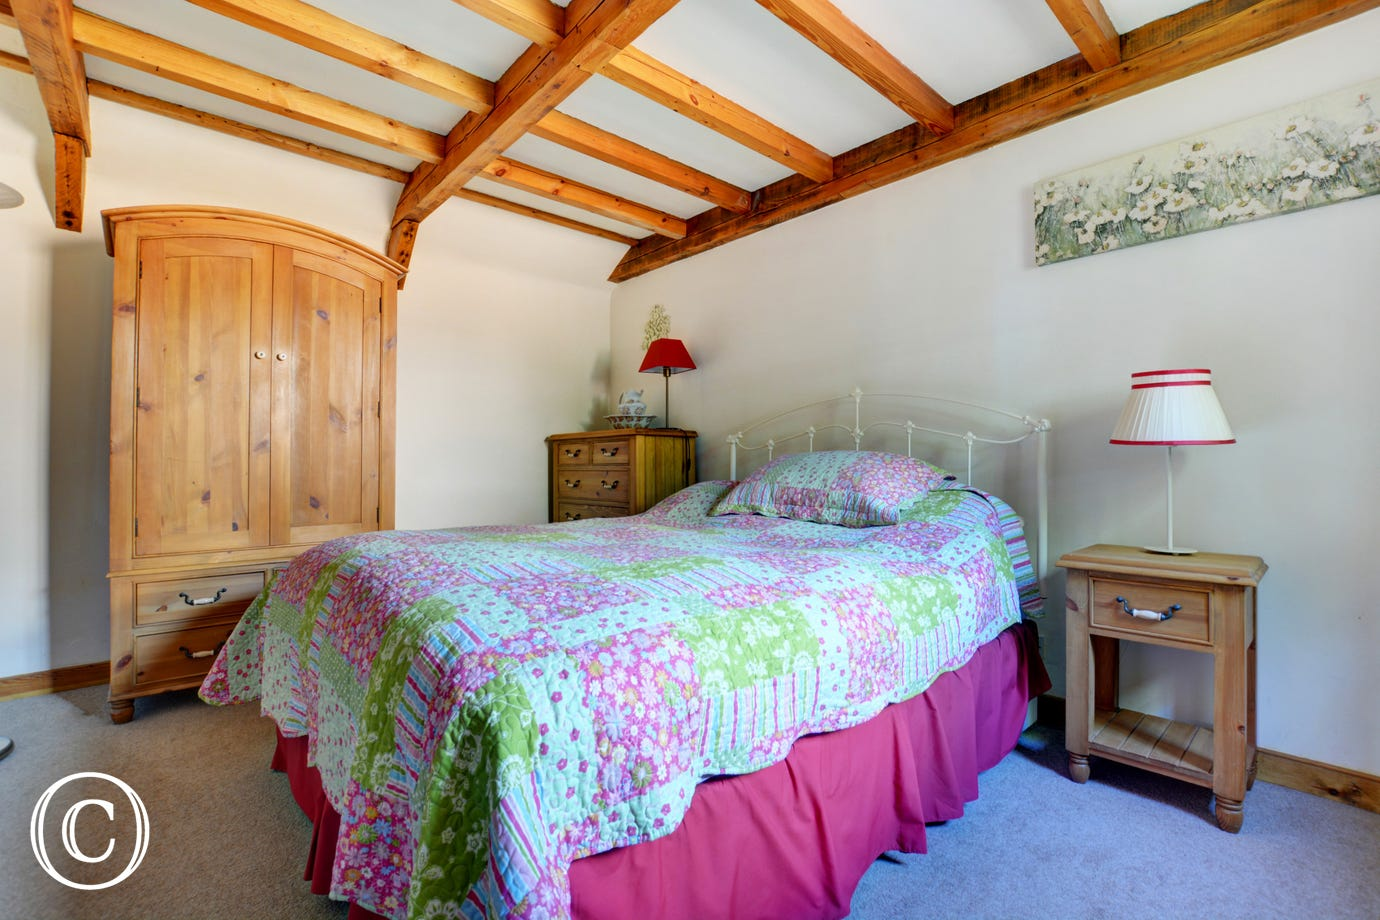 Very pretty country styled bedroom wtih beams, pine furniture, wrought iron bed and floral bedlinen in blues and pink.